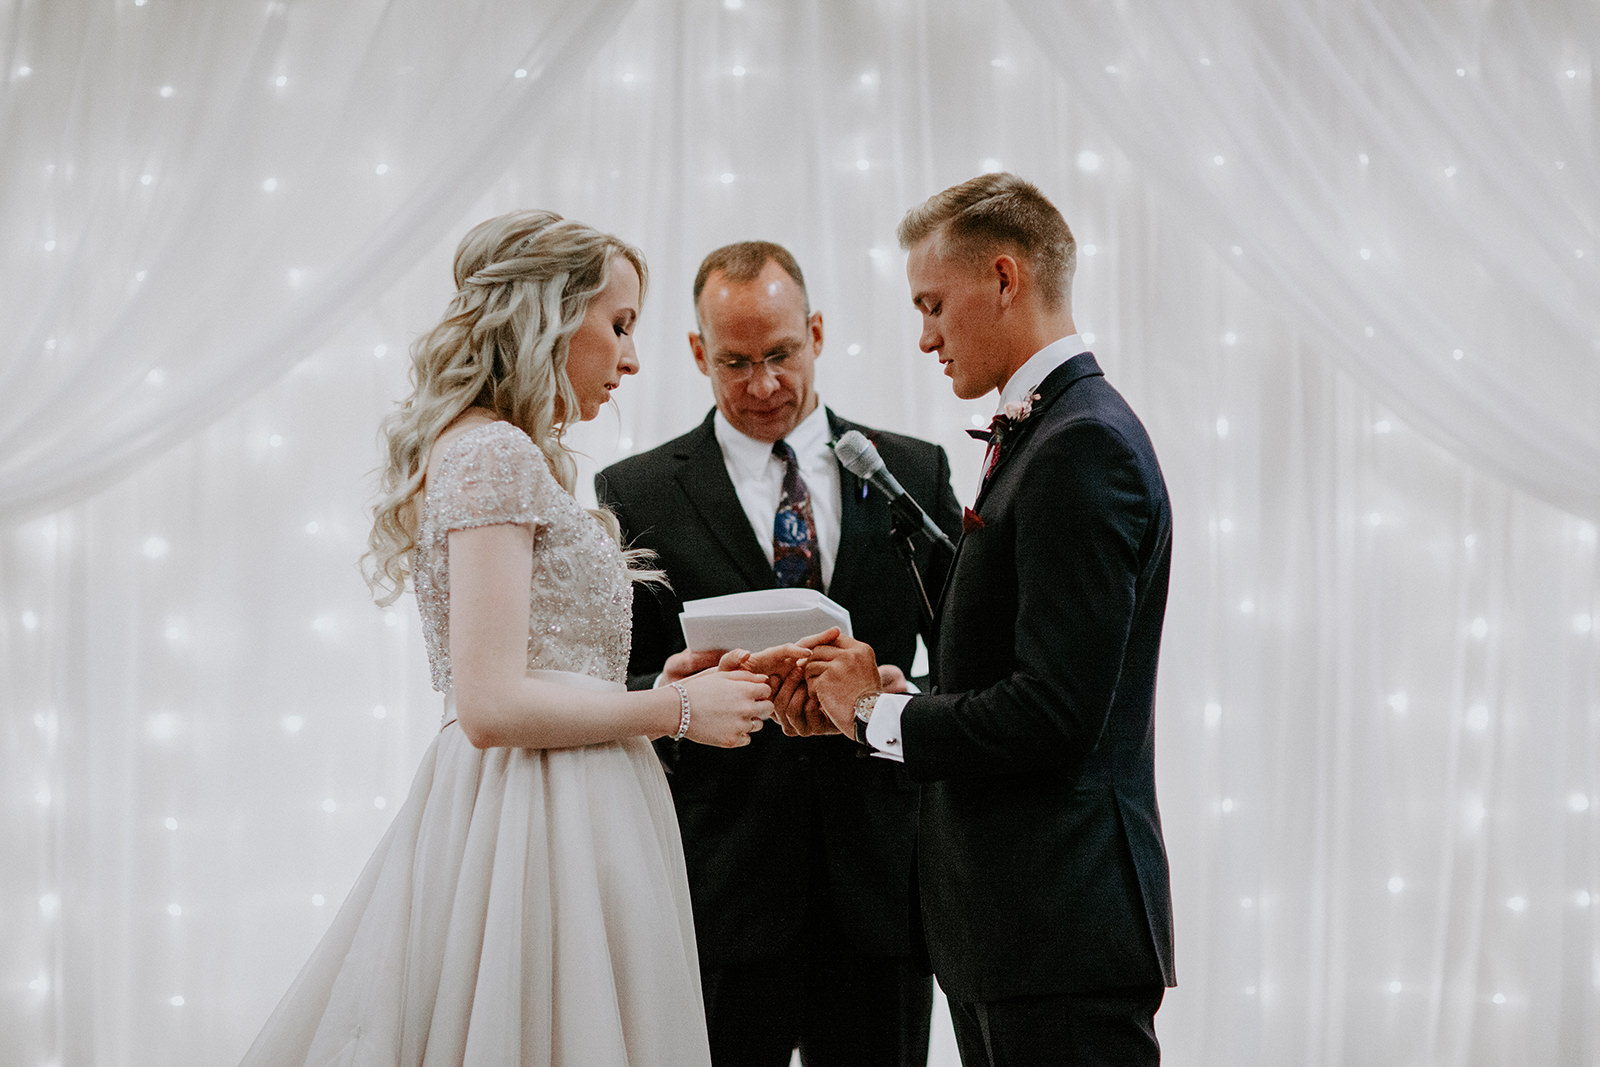 Groom slips on bride's ring during ceremony with white drapes and lights in background